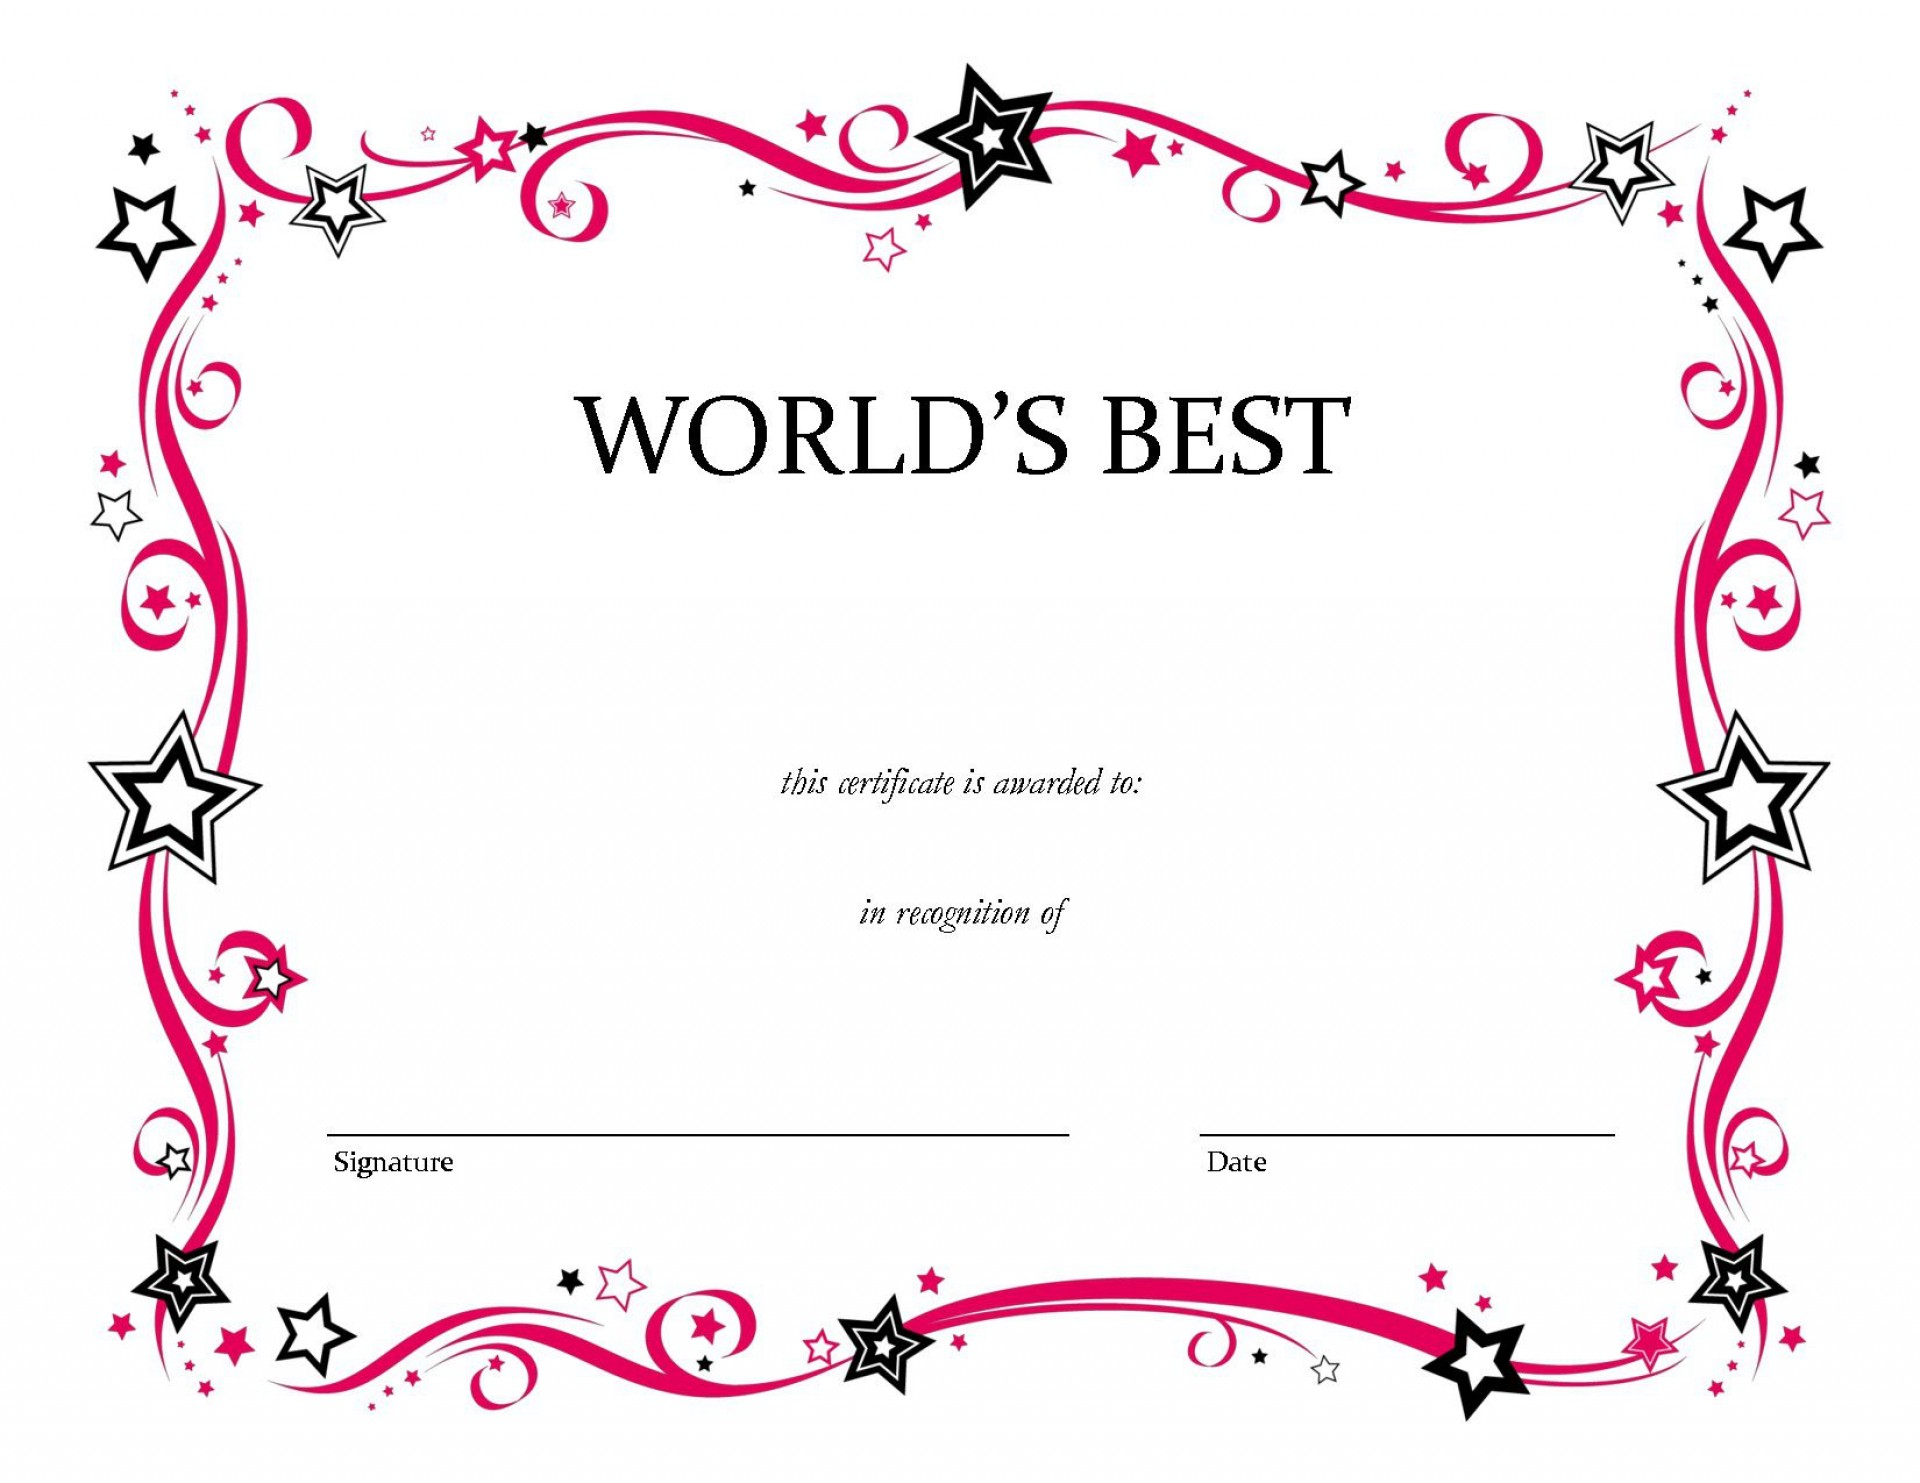 007 Marvelou Blank Award Certificate Template Picture  Printable Math Editable Free1920